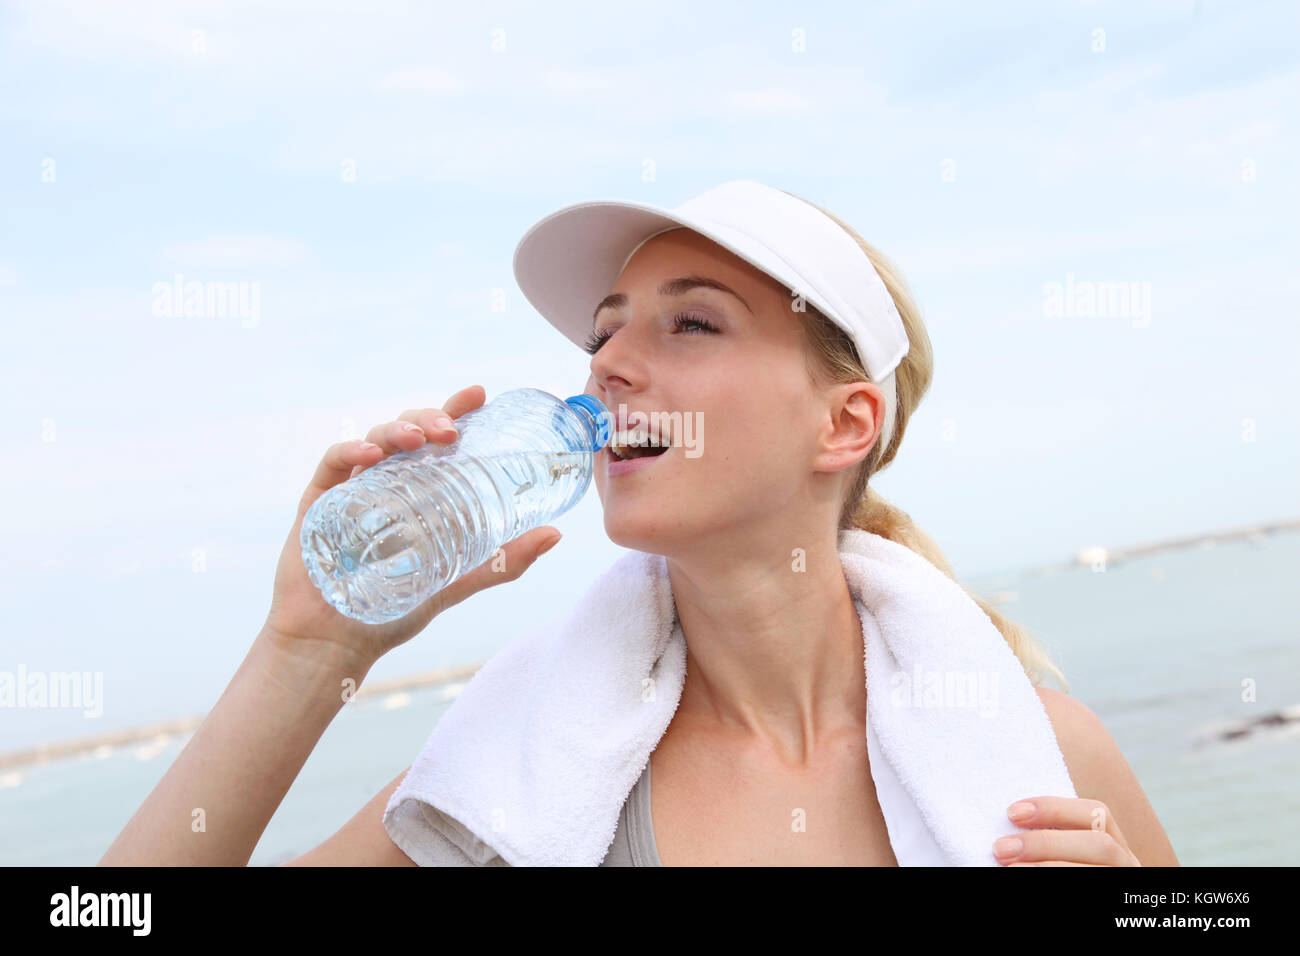 Portrait of jogger drinking water - Stock Image